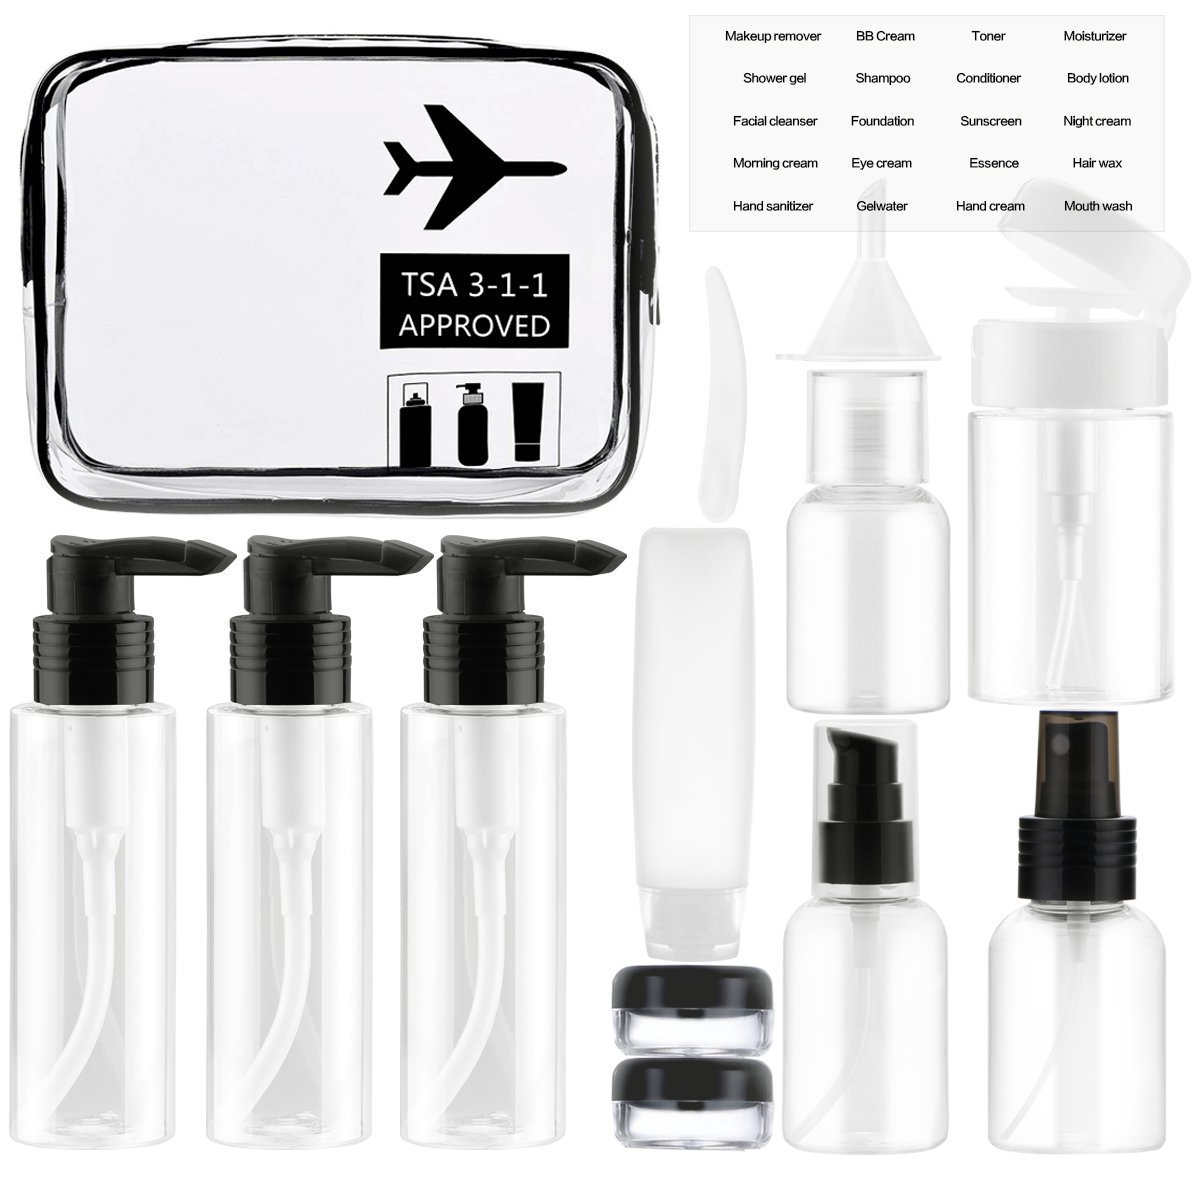 Wifzu 13PCS Travel bottles Set for Toiletries, Air Travel Size Clear Bottles and Jars for shampoo body wash Cosmetics with 1 TSA approved Clear zipper bag (black) by Wifzu (Image #1)